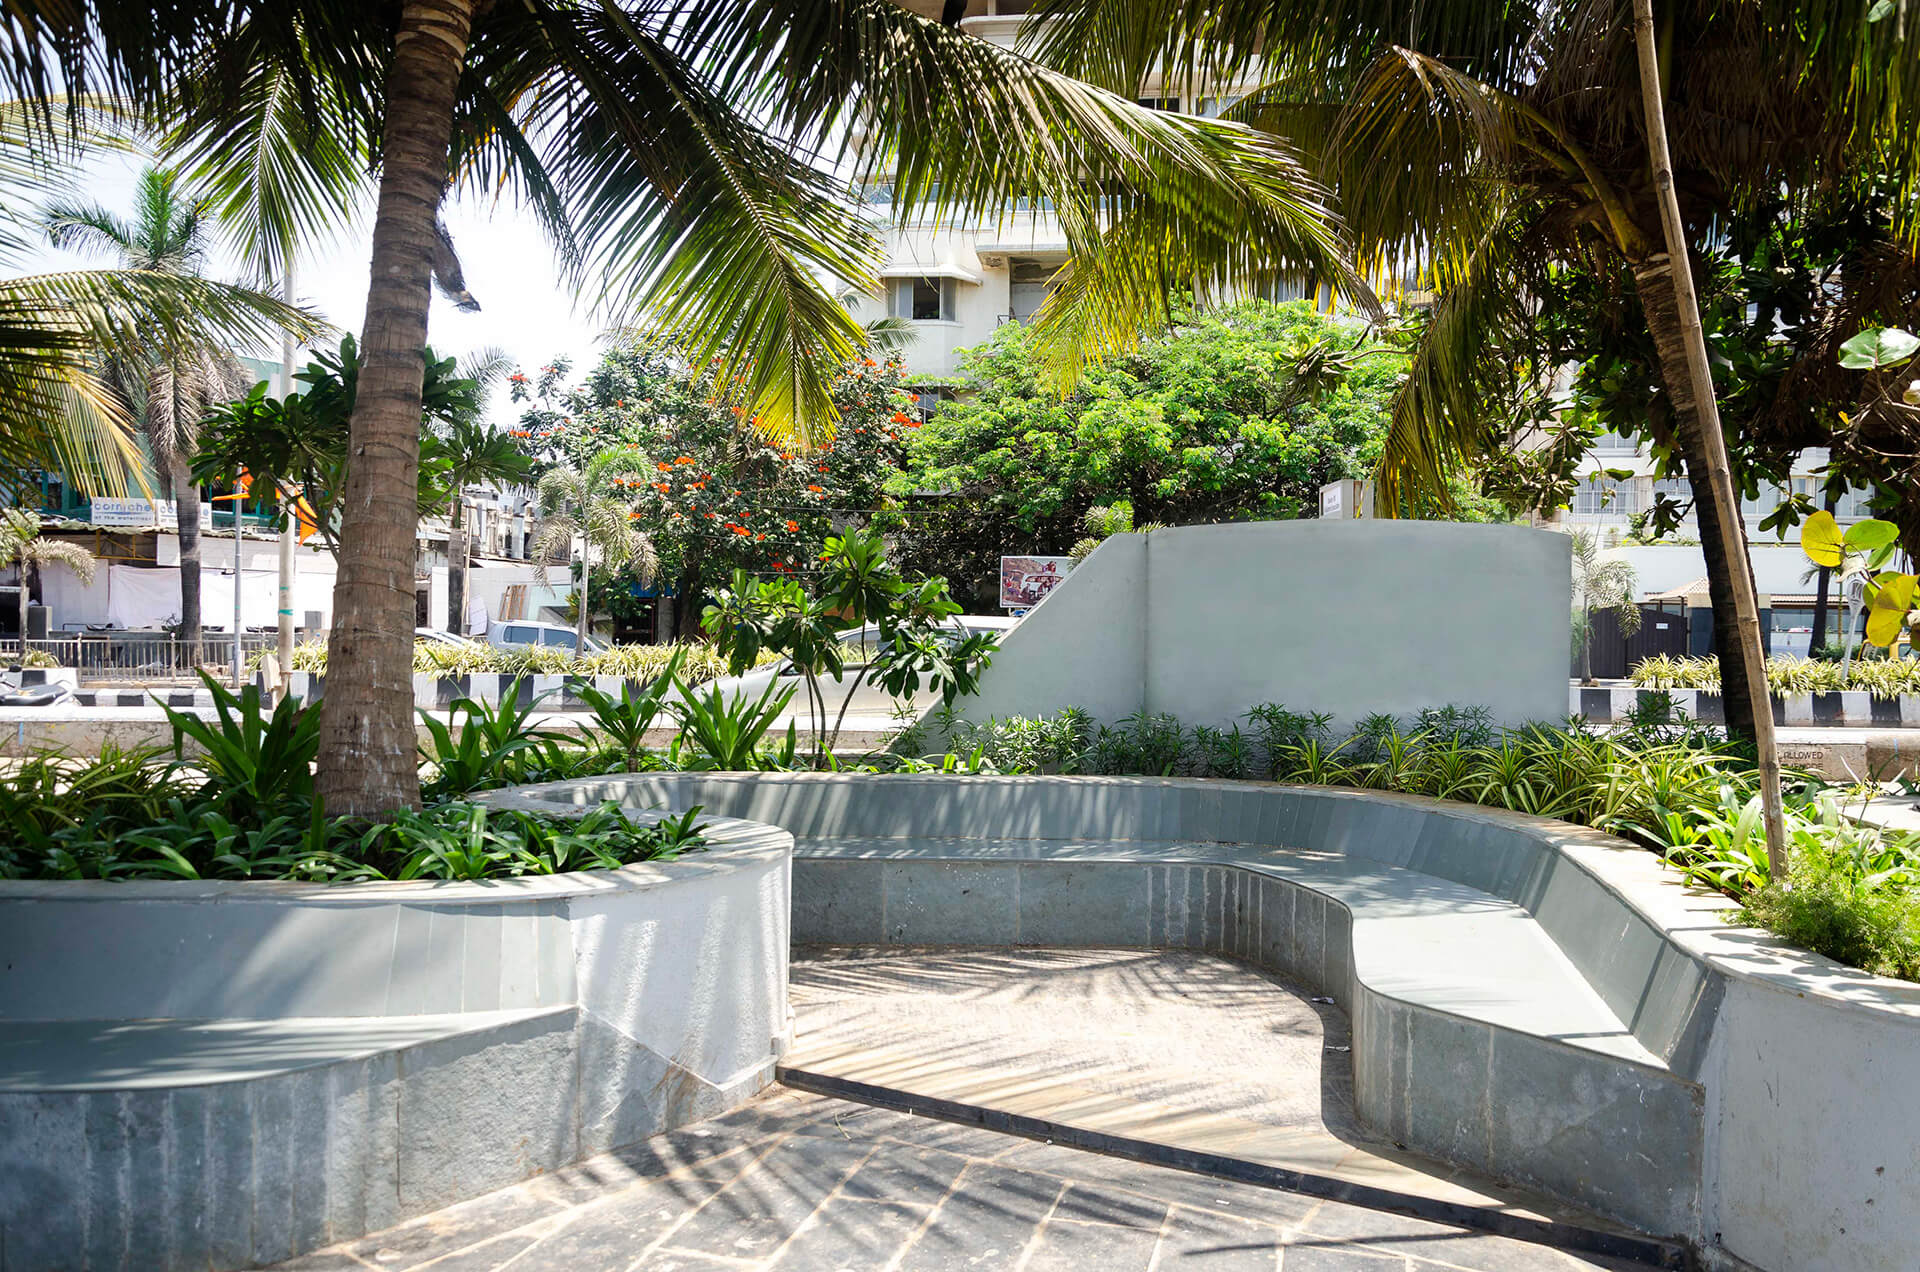 Carter Road park revitalised by the Bandra Collective | Mumbai Street Lab | COVID Safety Initiative | STIRworld